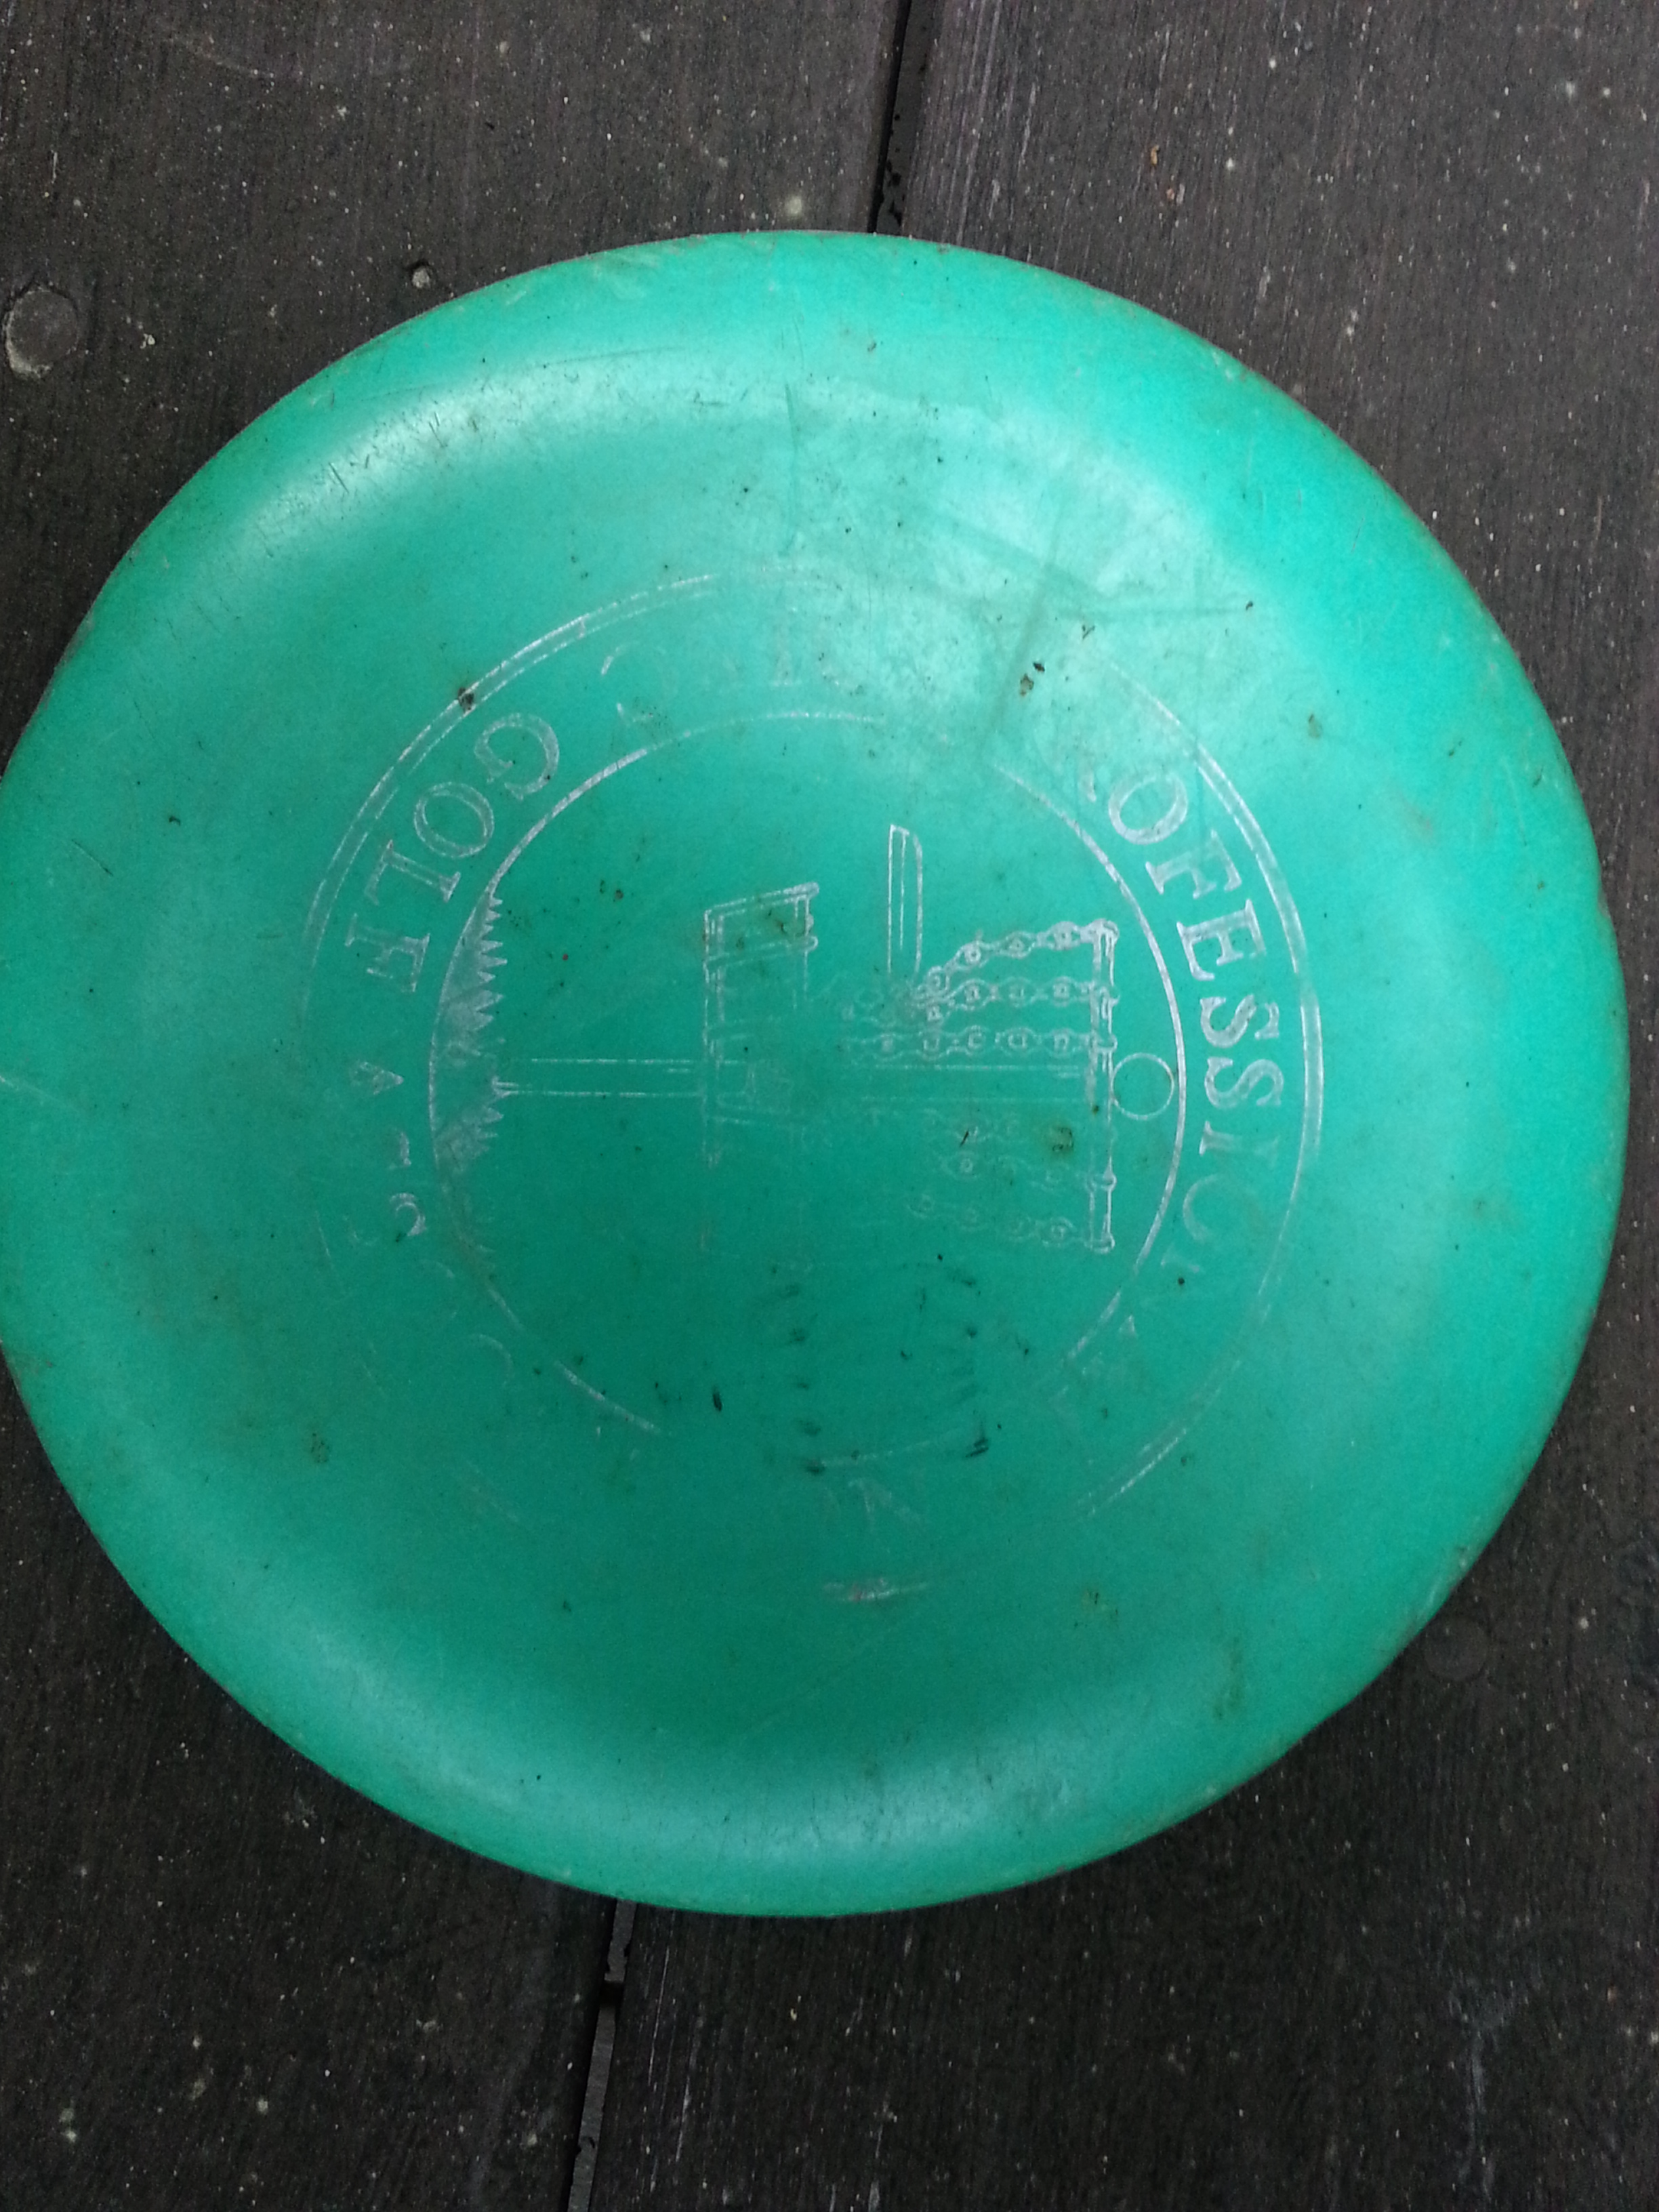 New PDGA Members Get A Stamped Disc The Authors Is Now Well